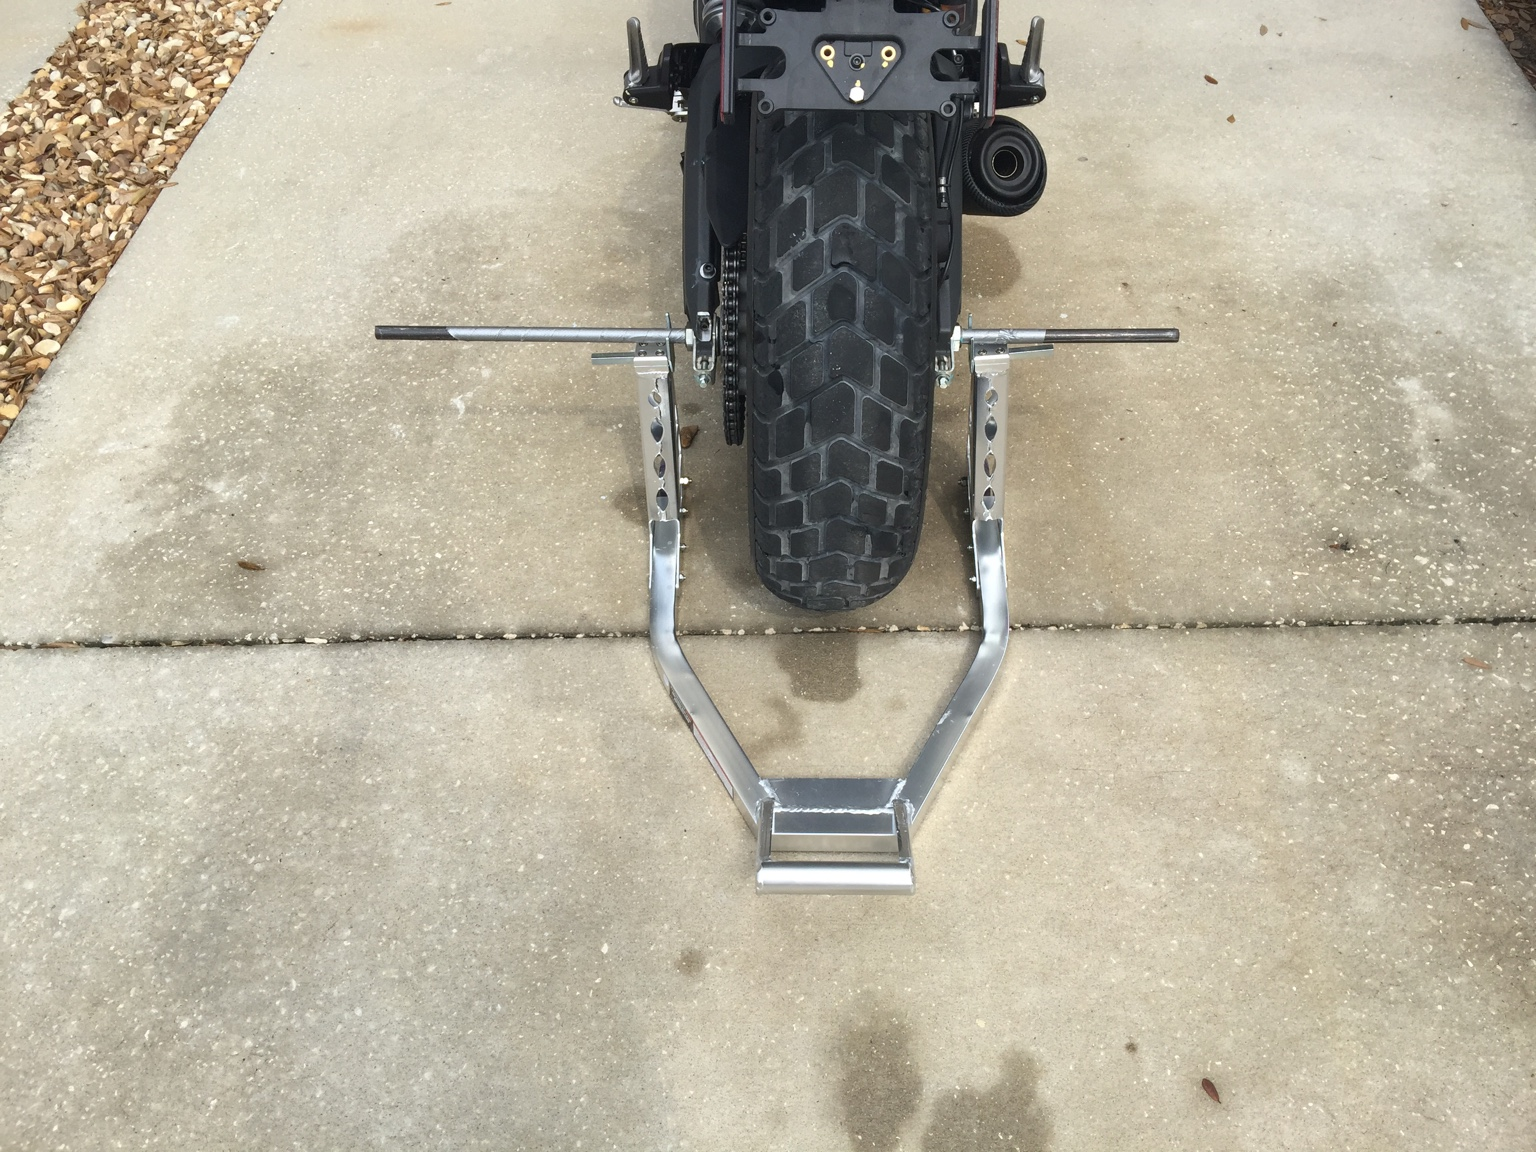 What S The Best Way To Lift This Bike Off The Ground